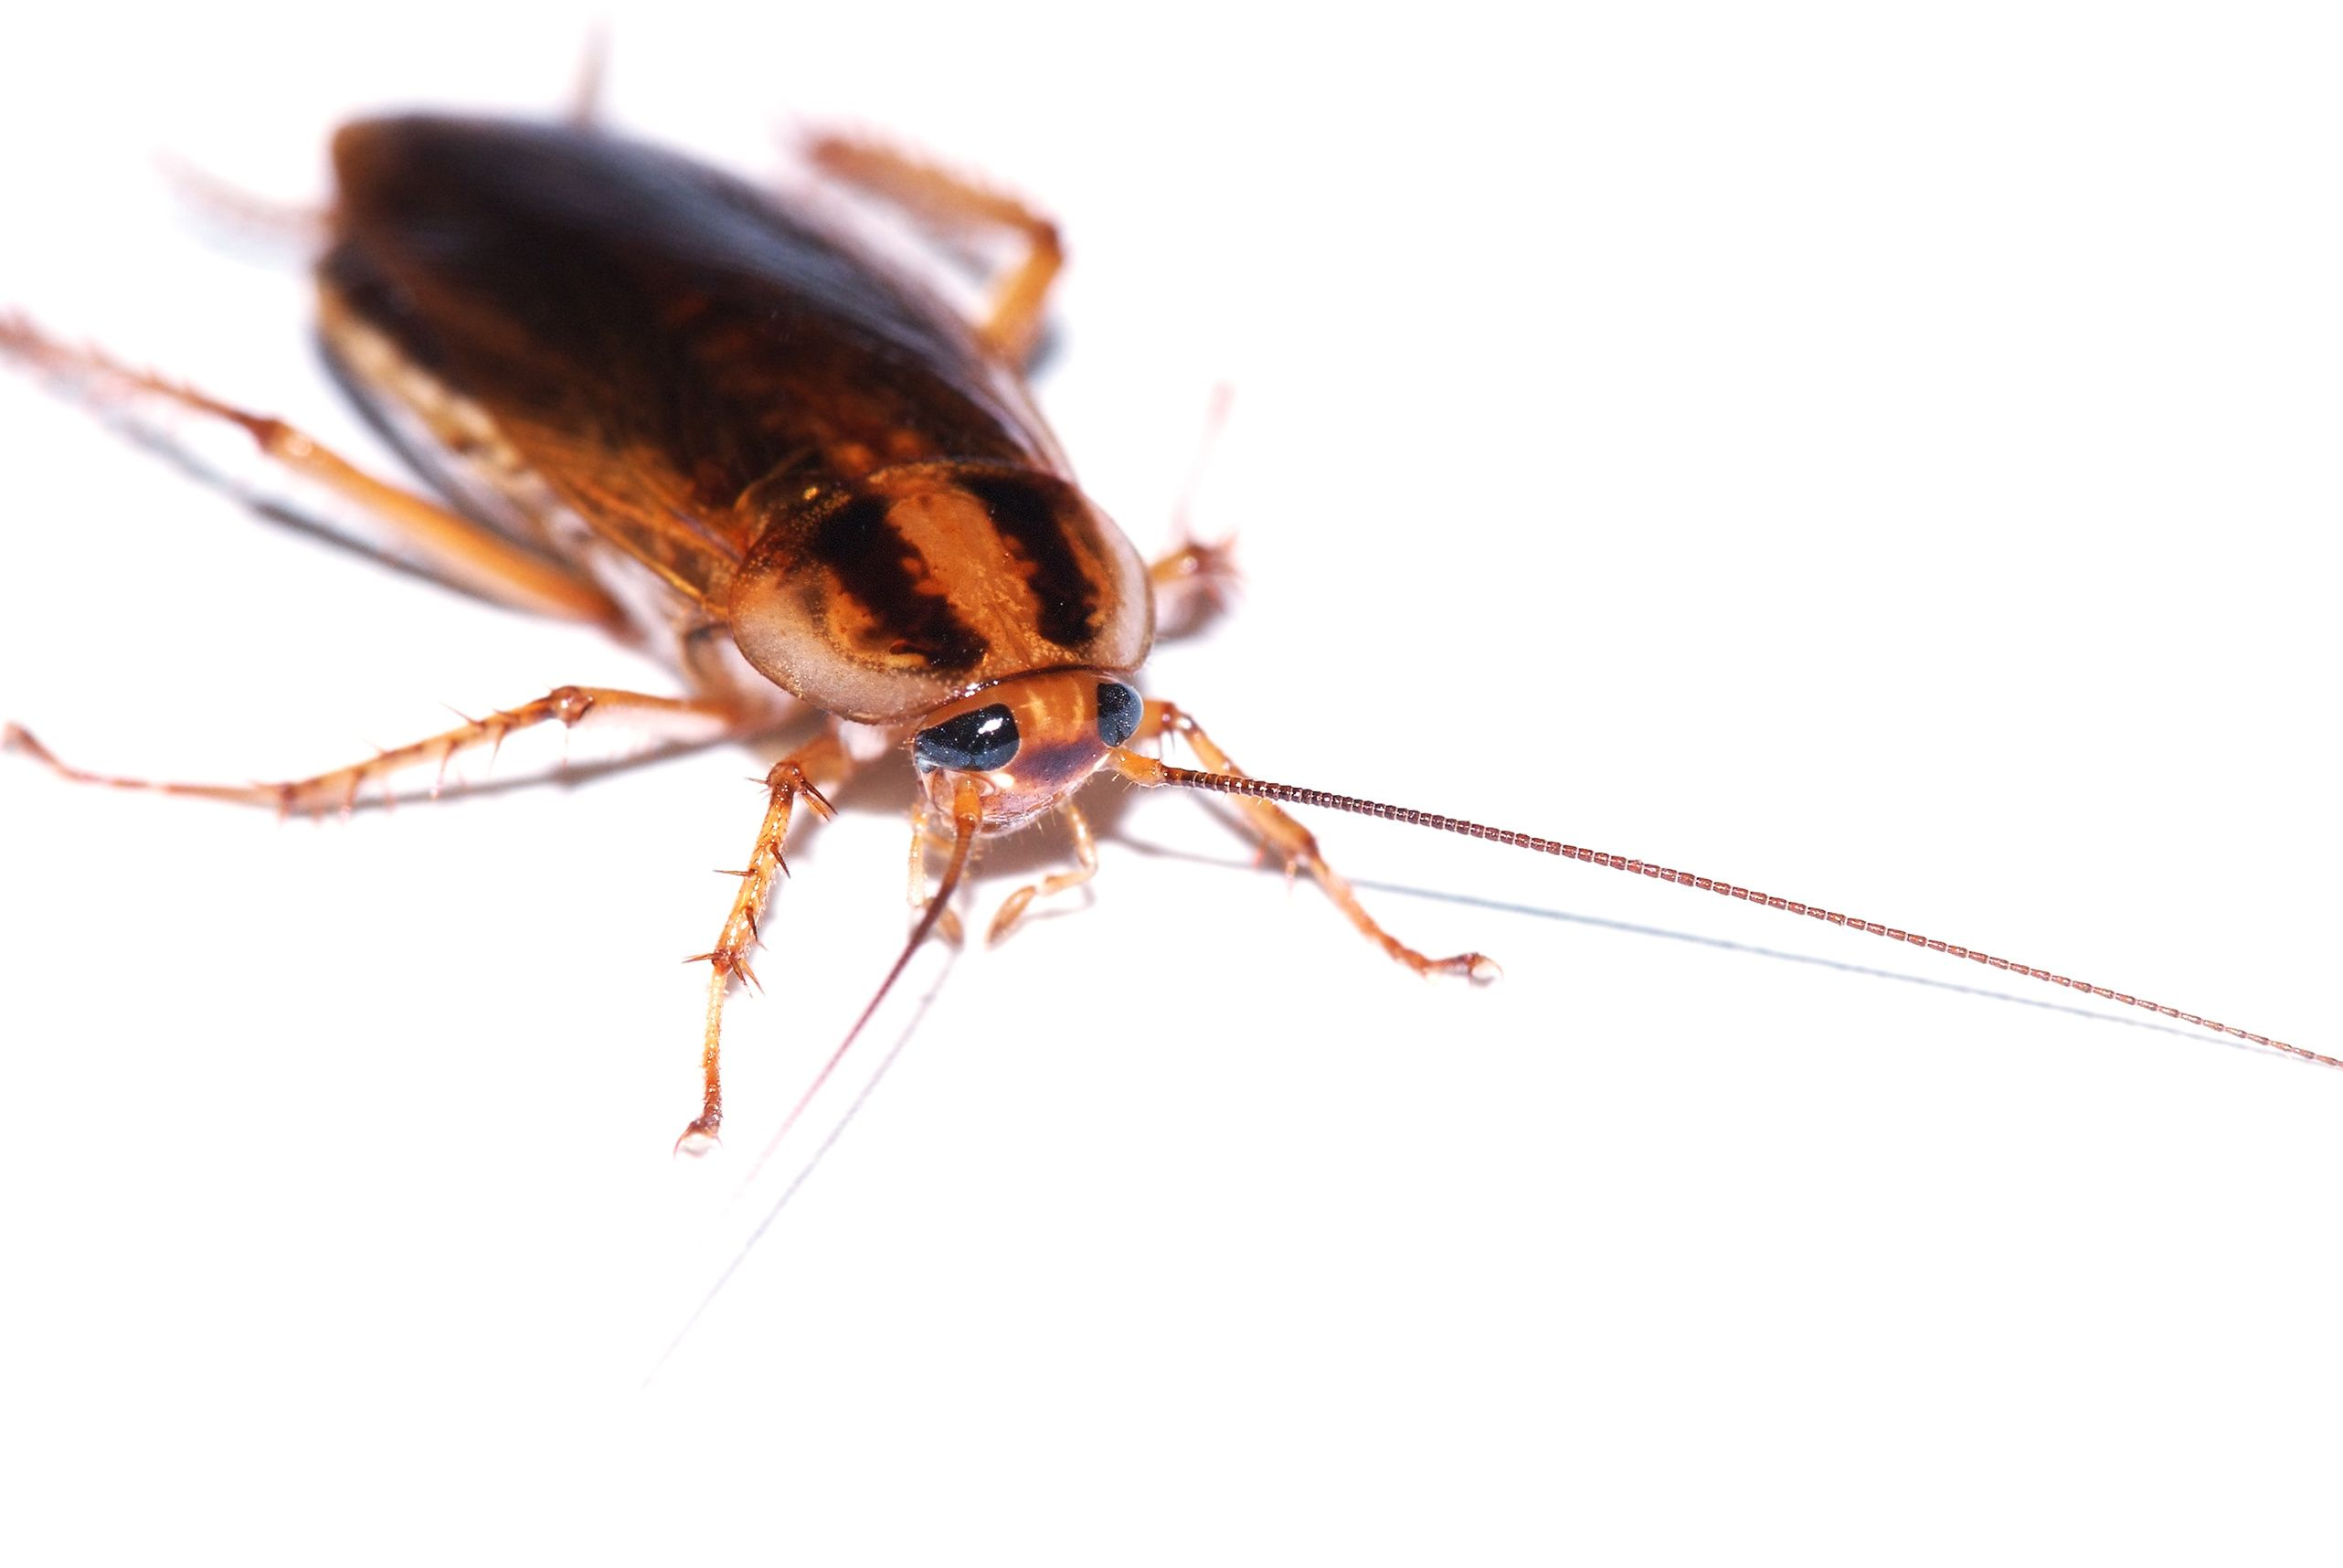 Three best ways you can use for the cockroach extermination